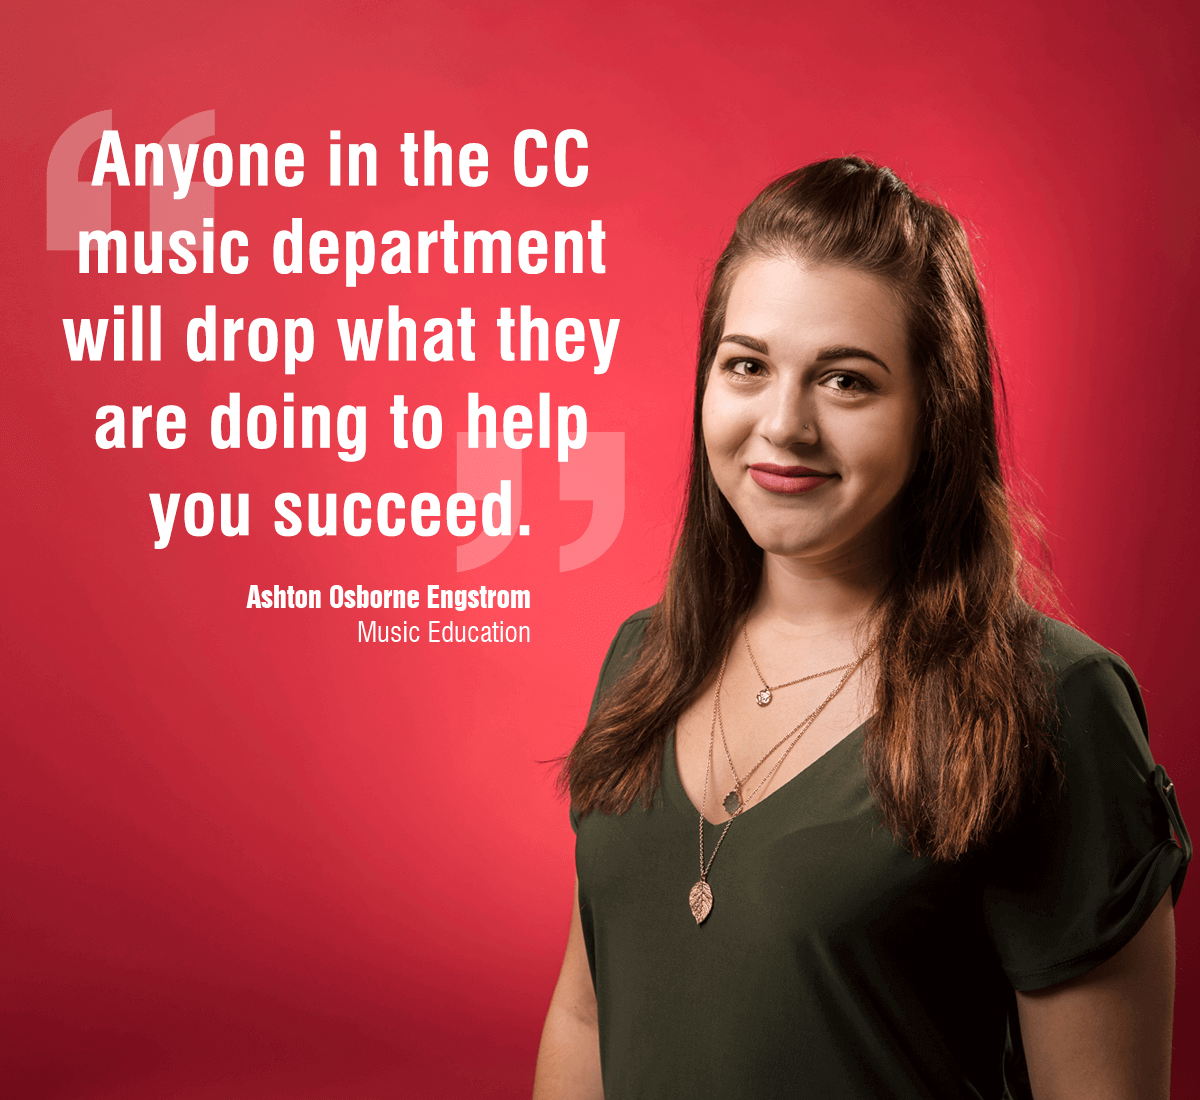 """testimonial by Ashton Osborne Engstrom: """"Anyone in the CC music department will drop what they are doing ot help you succeed."""""""